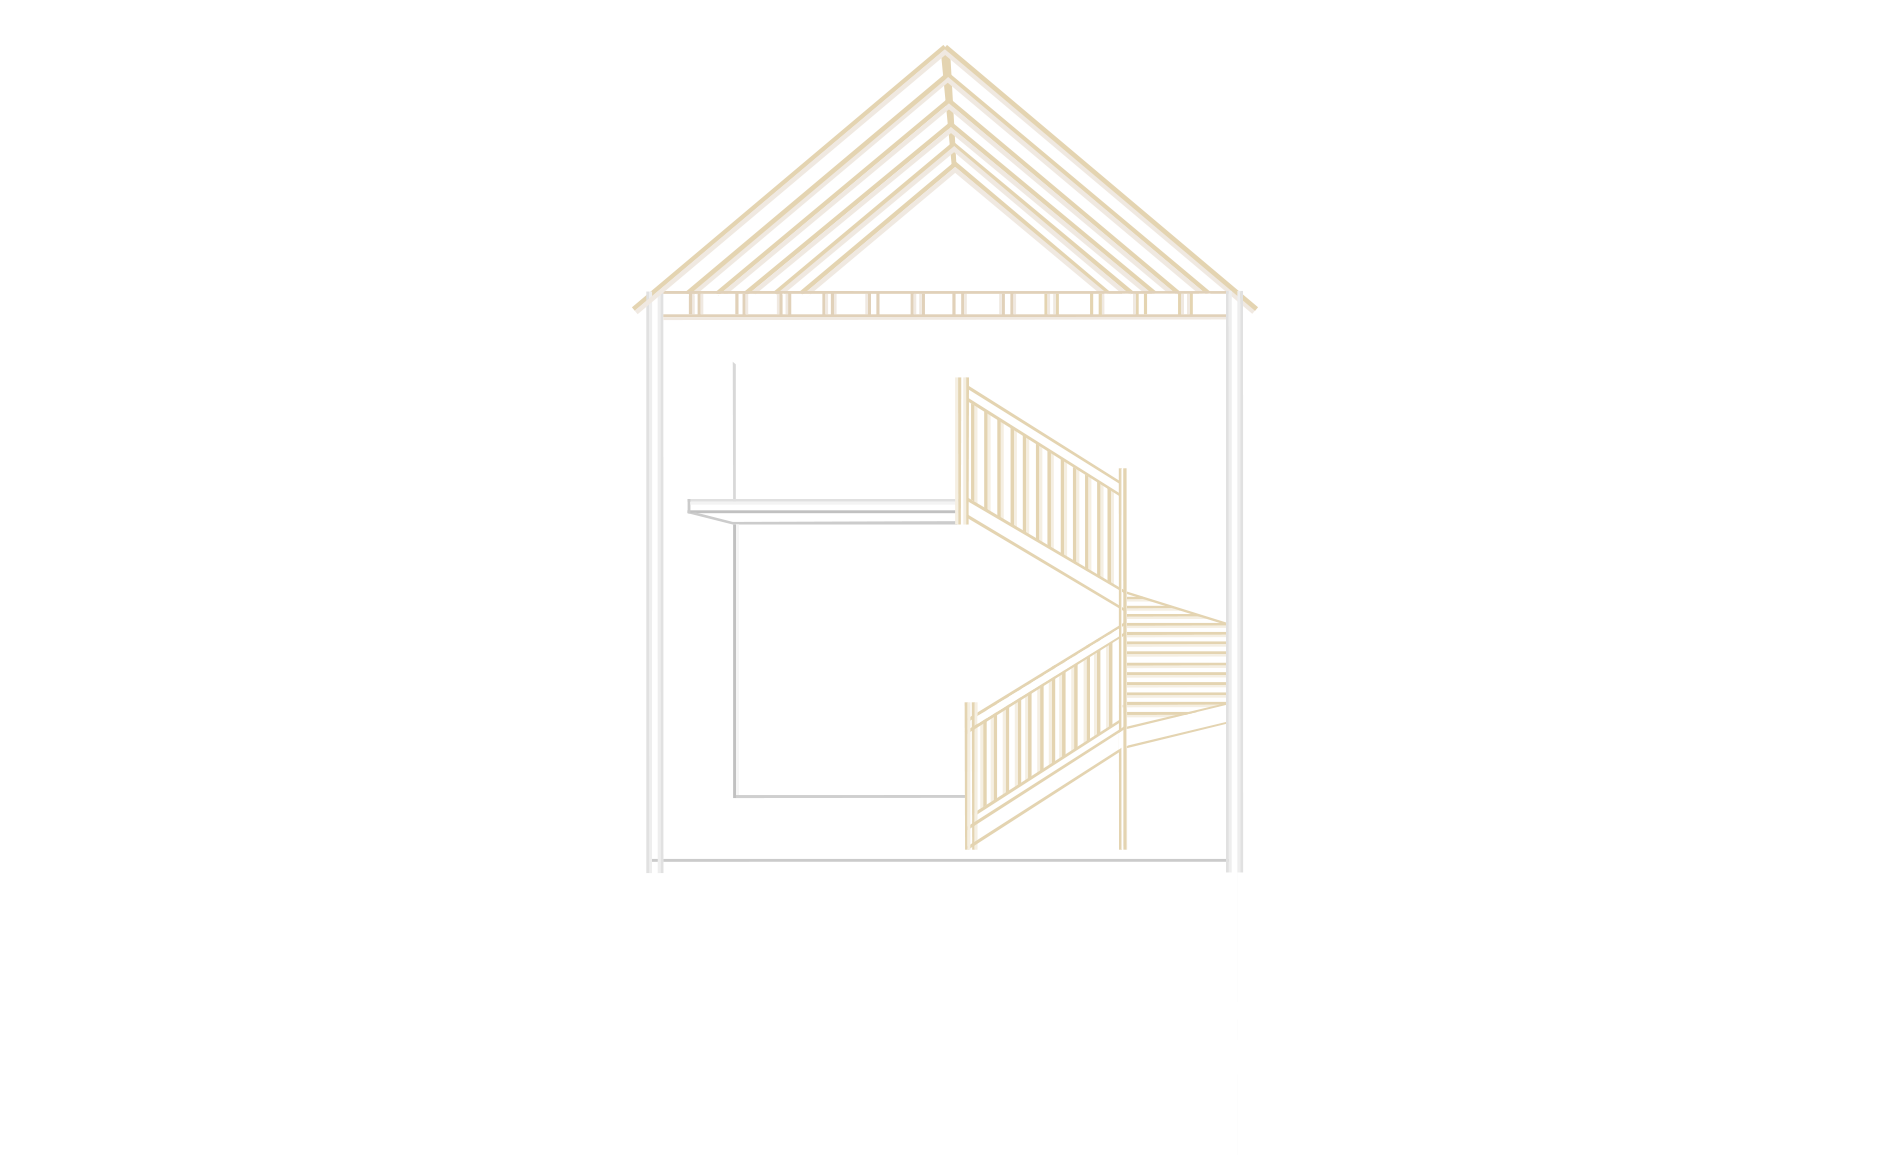 LOGO CEMA OURSELIN